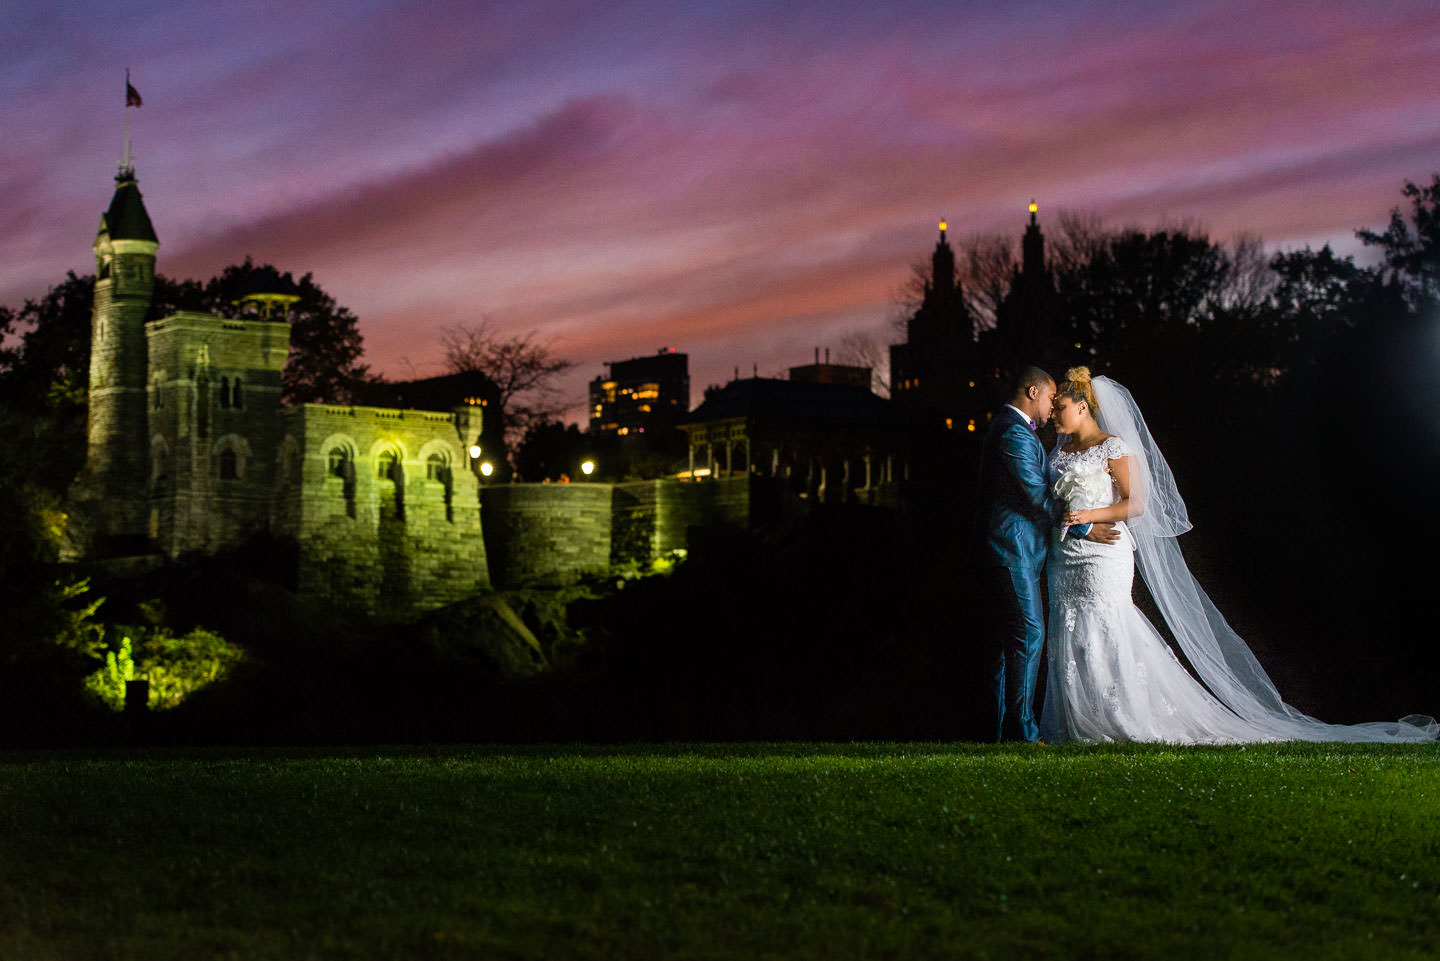 bride and groom wedding day in central park at belvedere castle at sunset